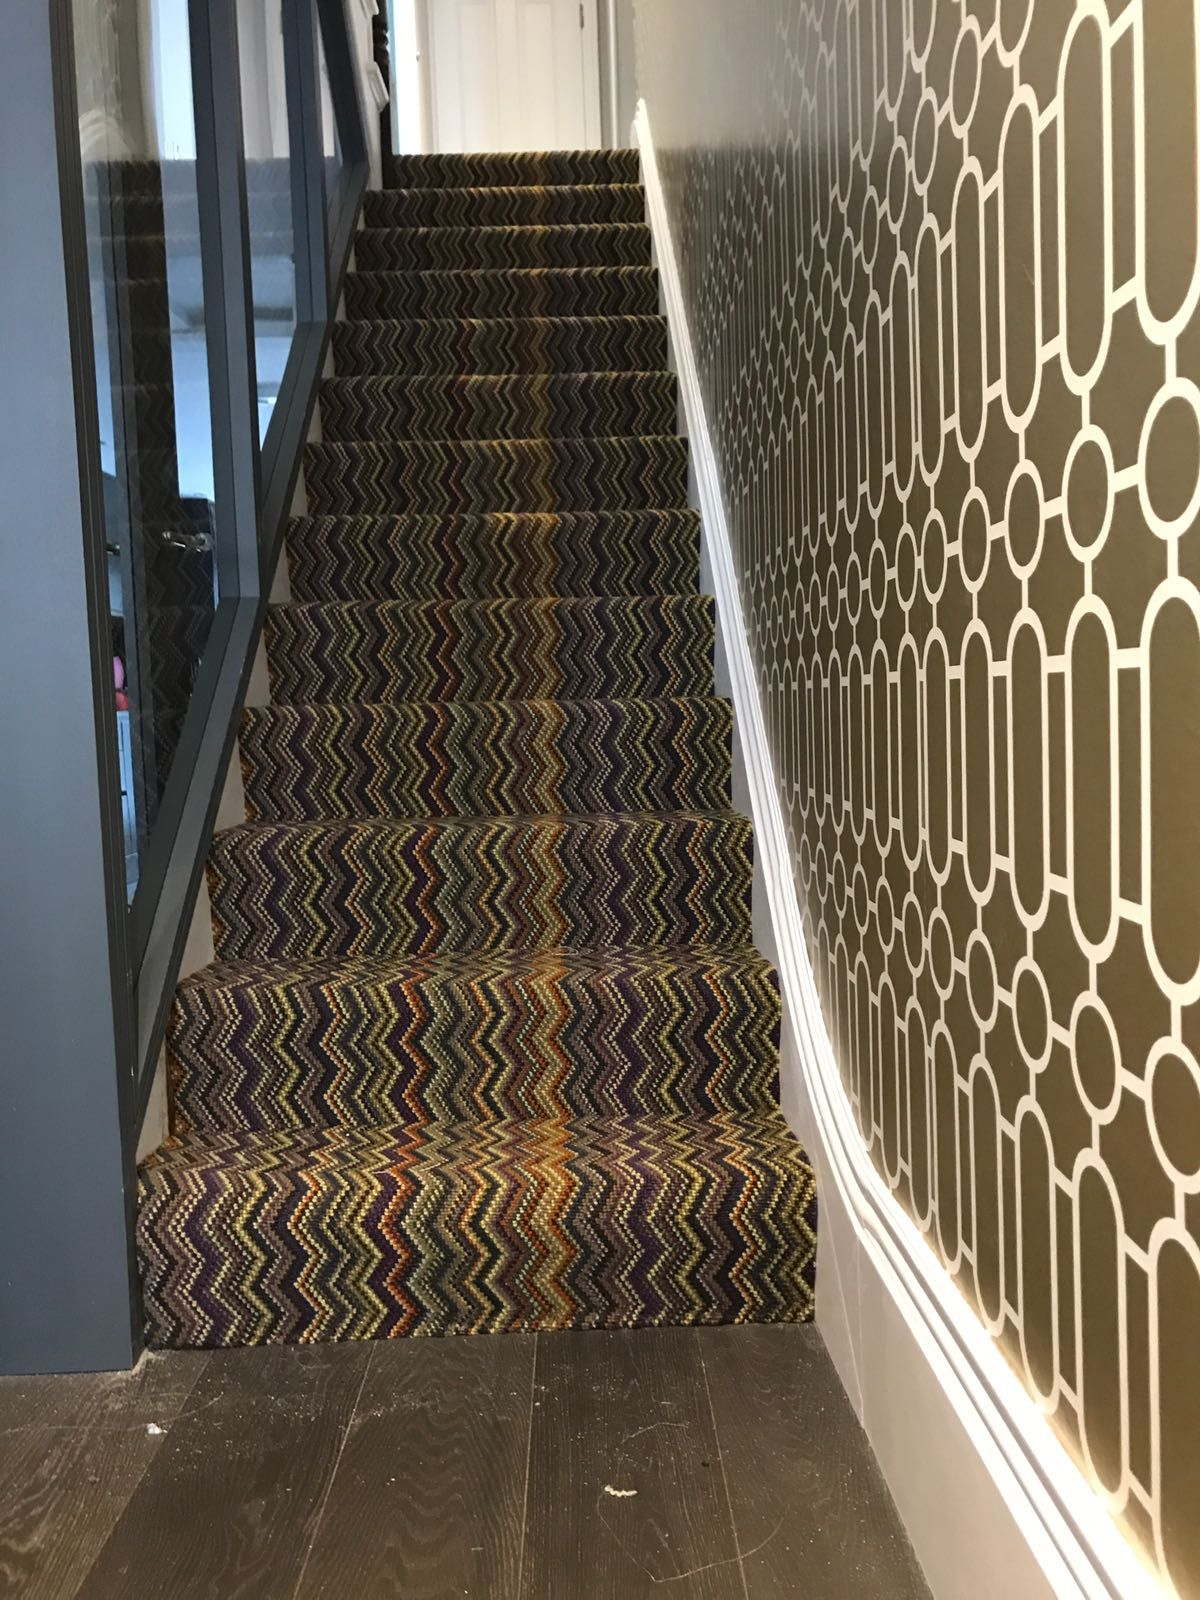 Fabulous Range Fitted Recently By Our Expert Fitters A Great Look For Stairs And Landings Not Sure About This Colour Pop I Carpet Shops Stairs Stair Runner